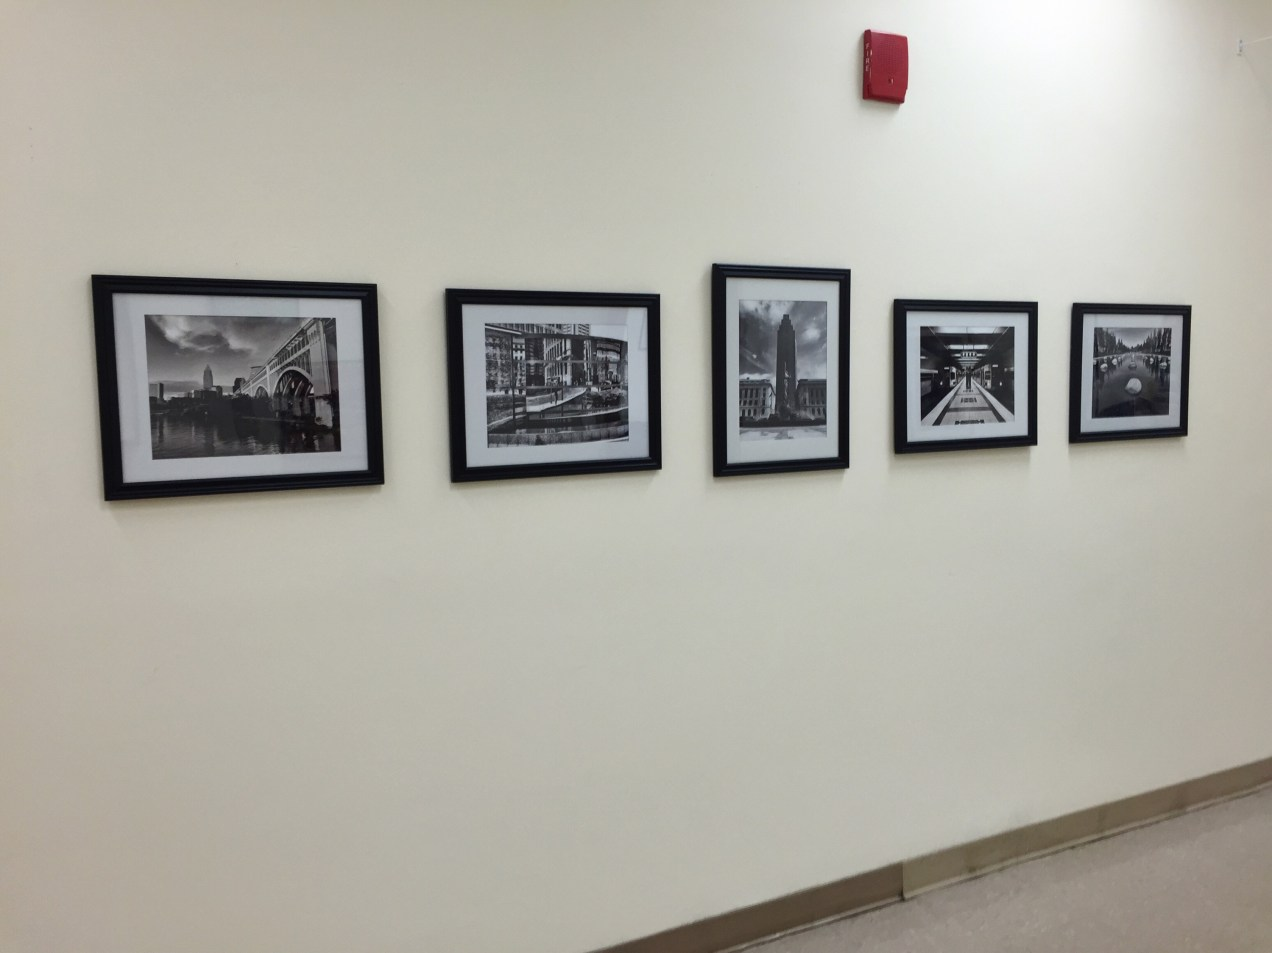 Cleveland images, part of the Four Cities exhibit at Children's National Medical Center in Washington DC